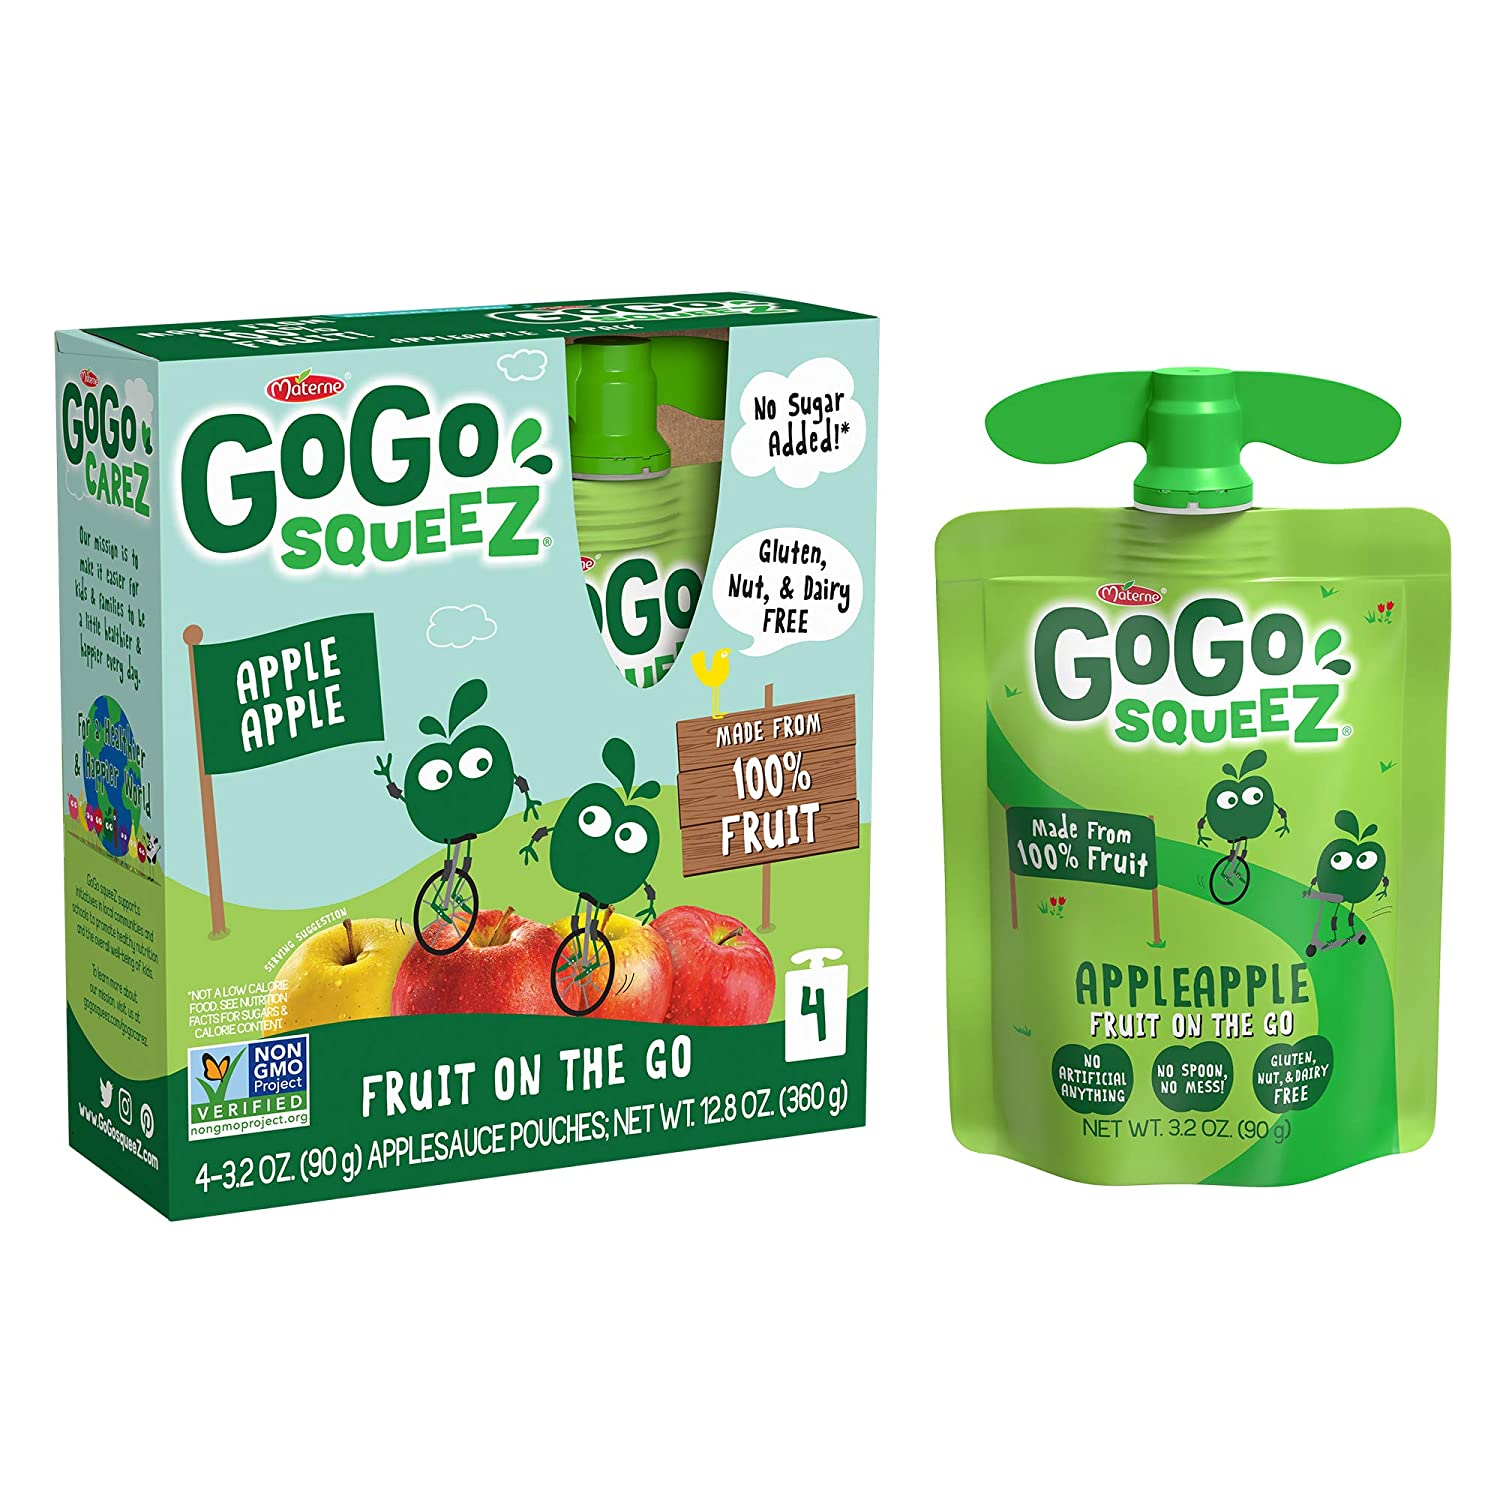 GoGo squeeZ Applesauce, Apple Apple, 3.2 Ounce (4 Pouches), Gluten Free, Vegan Friendly, Unsweetened Applesauce, Recloseable, BPA Free Pouches